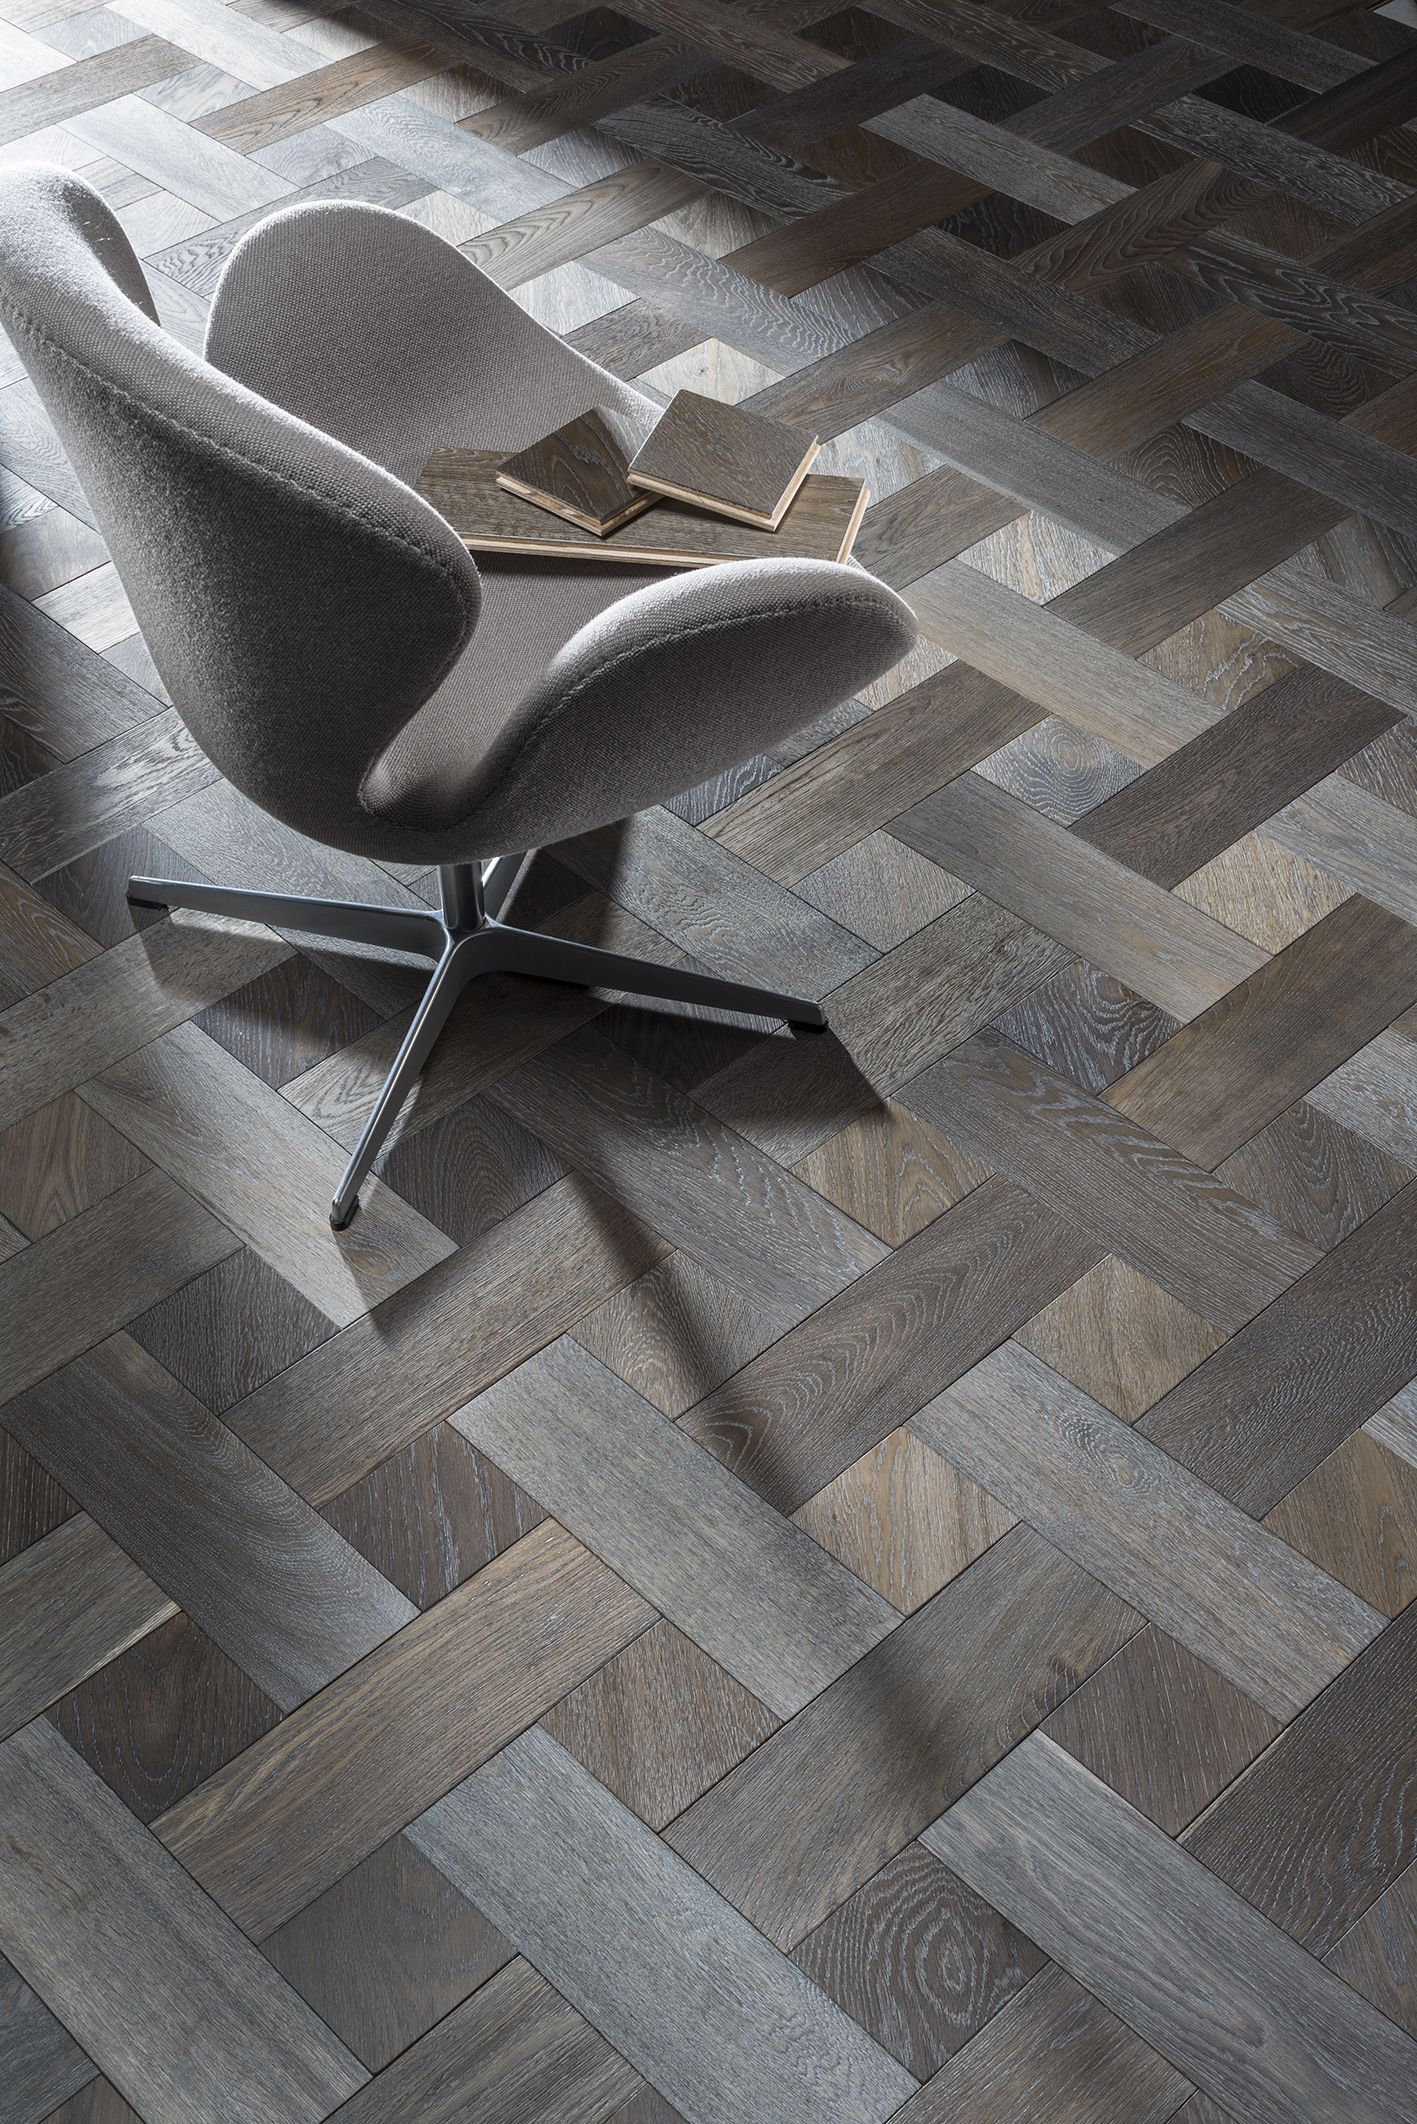 Elle Decor Advert Broderie In Gainsboro By Rhodium Floors Wood Floor Design Floor Design Floor Patterns